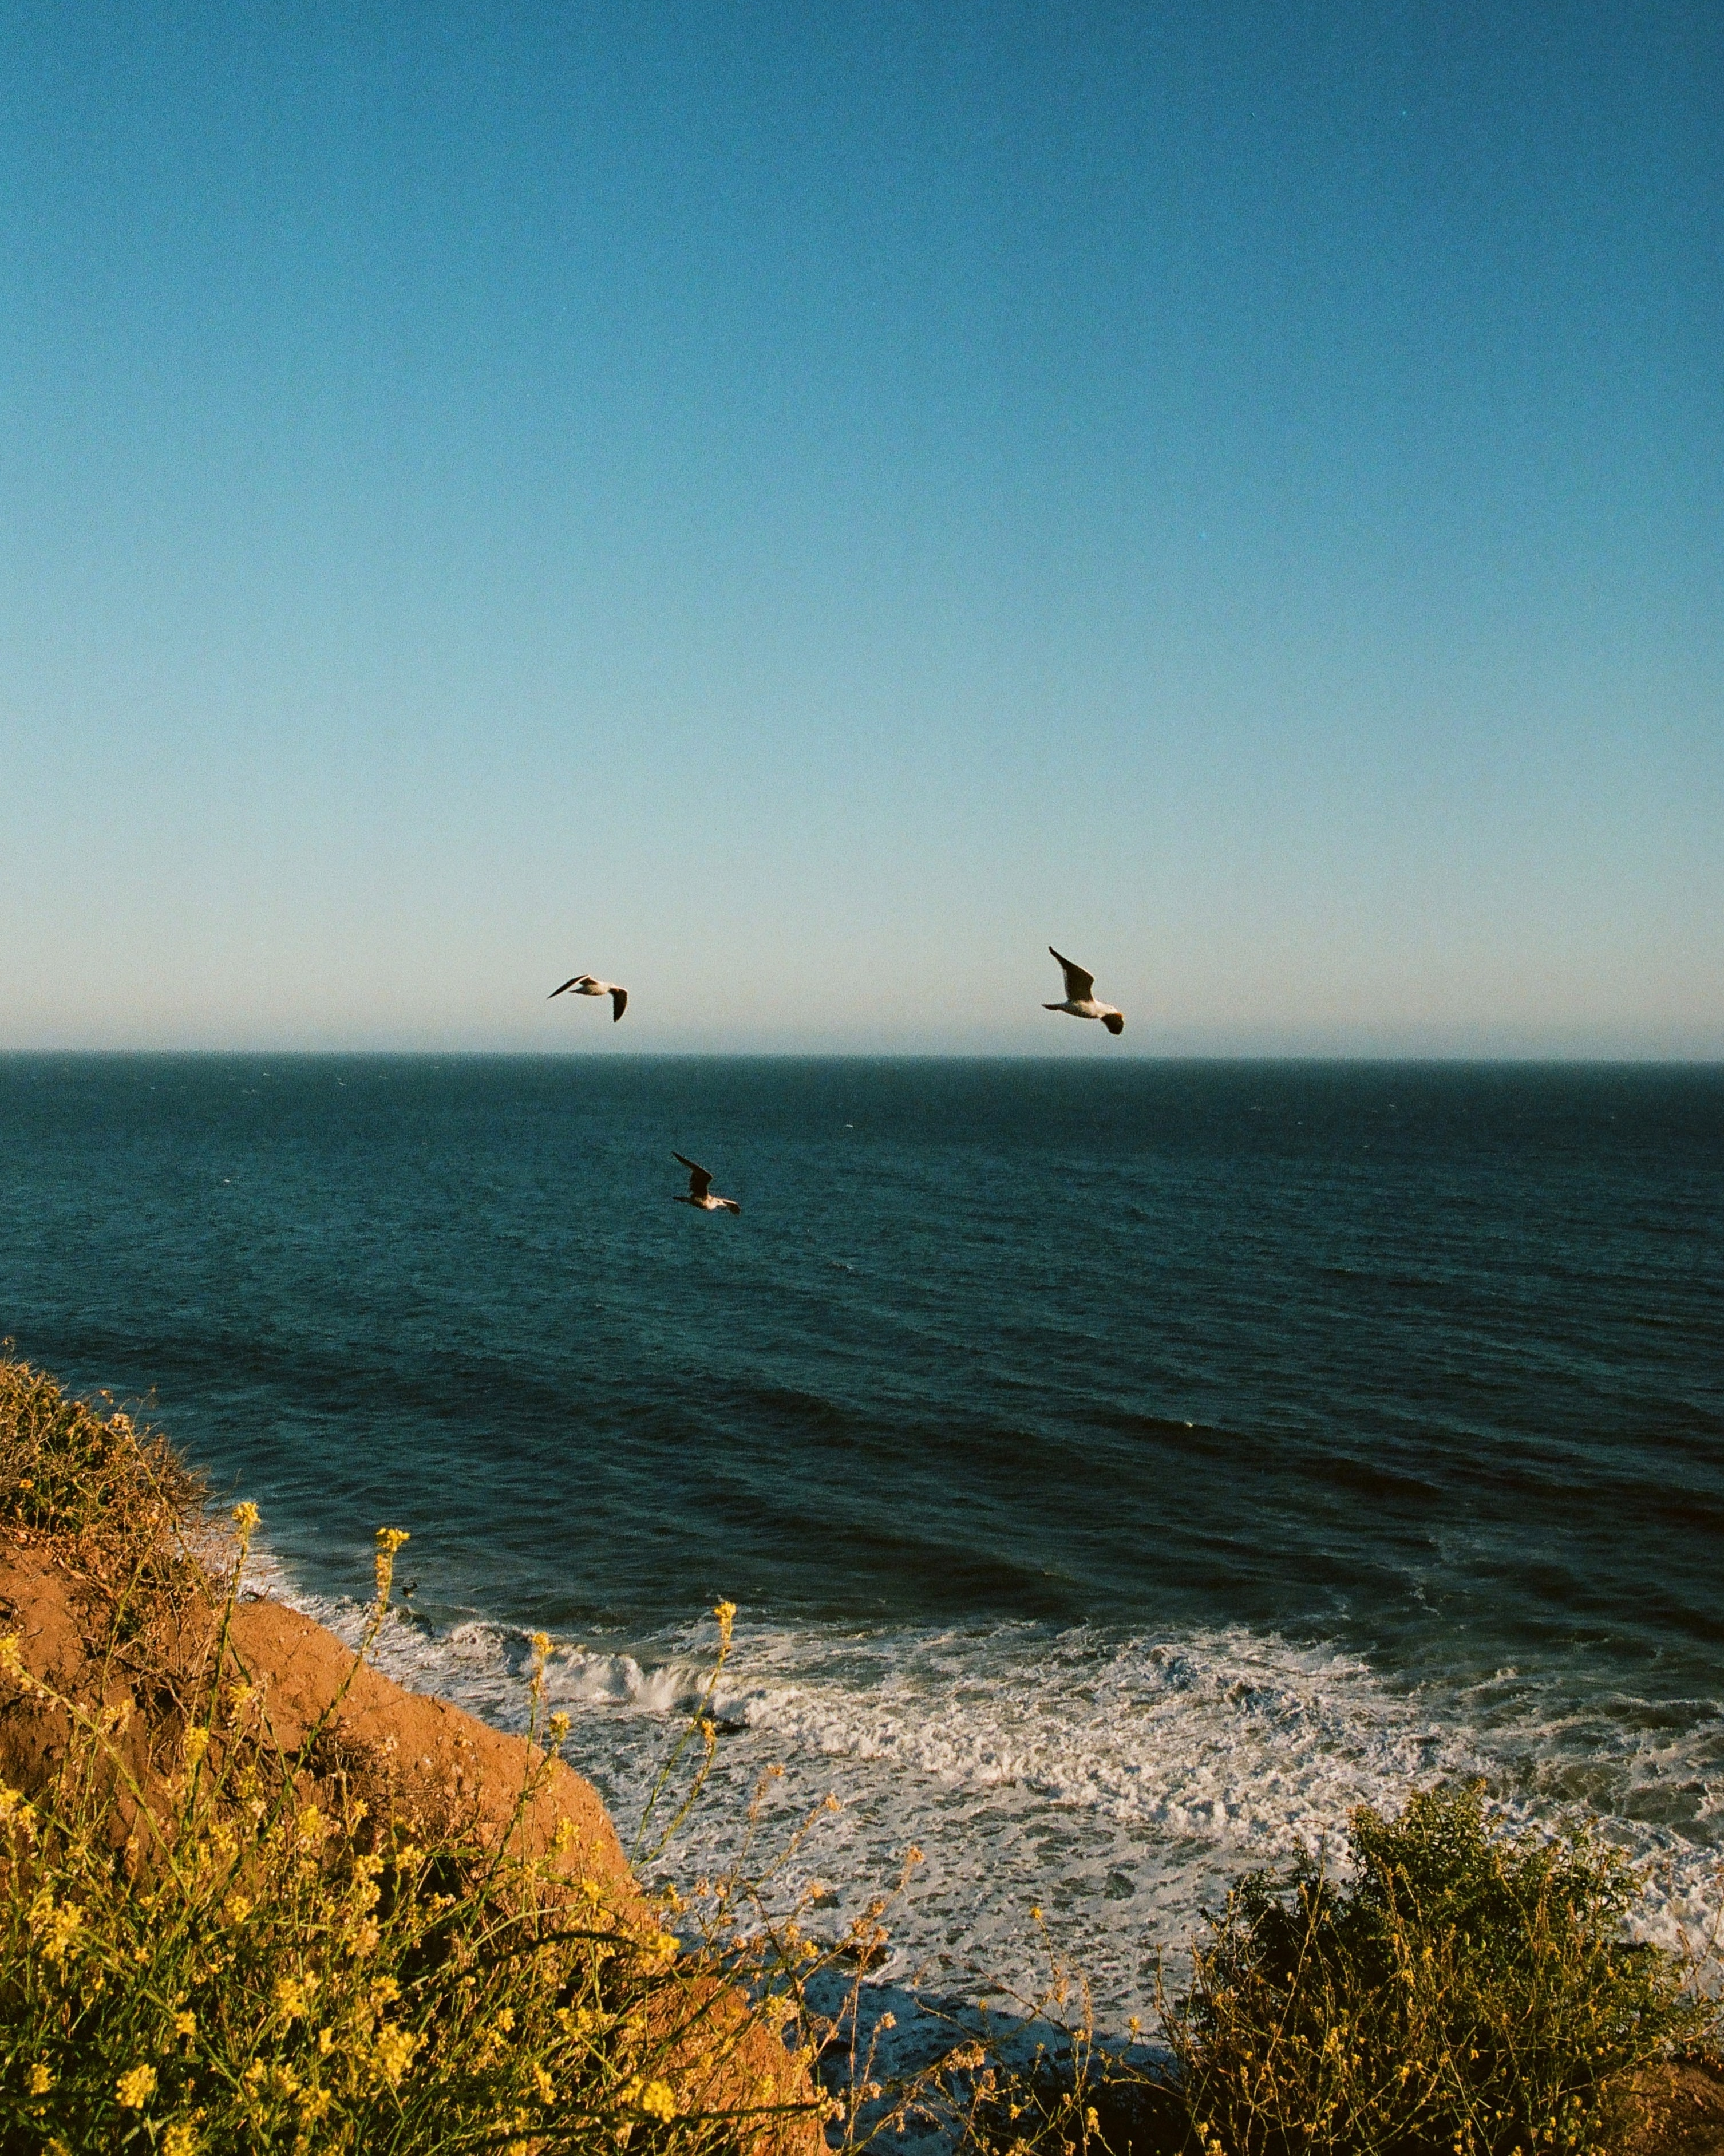 93204 download wallpaper Nature, Sea, Waves, Flowers, Birds, Seagulls screensavers and pictures for free